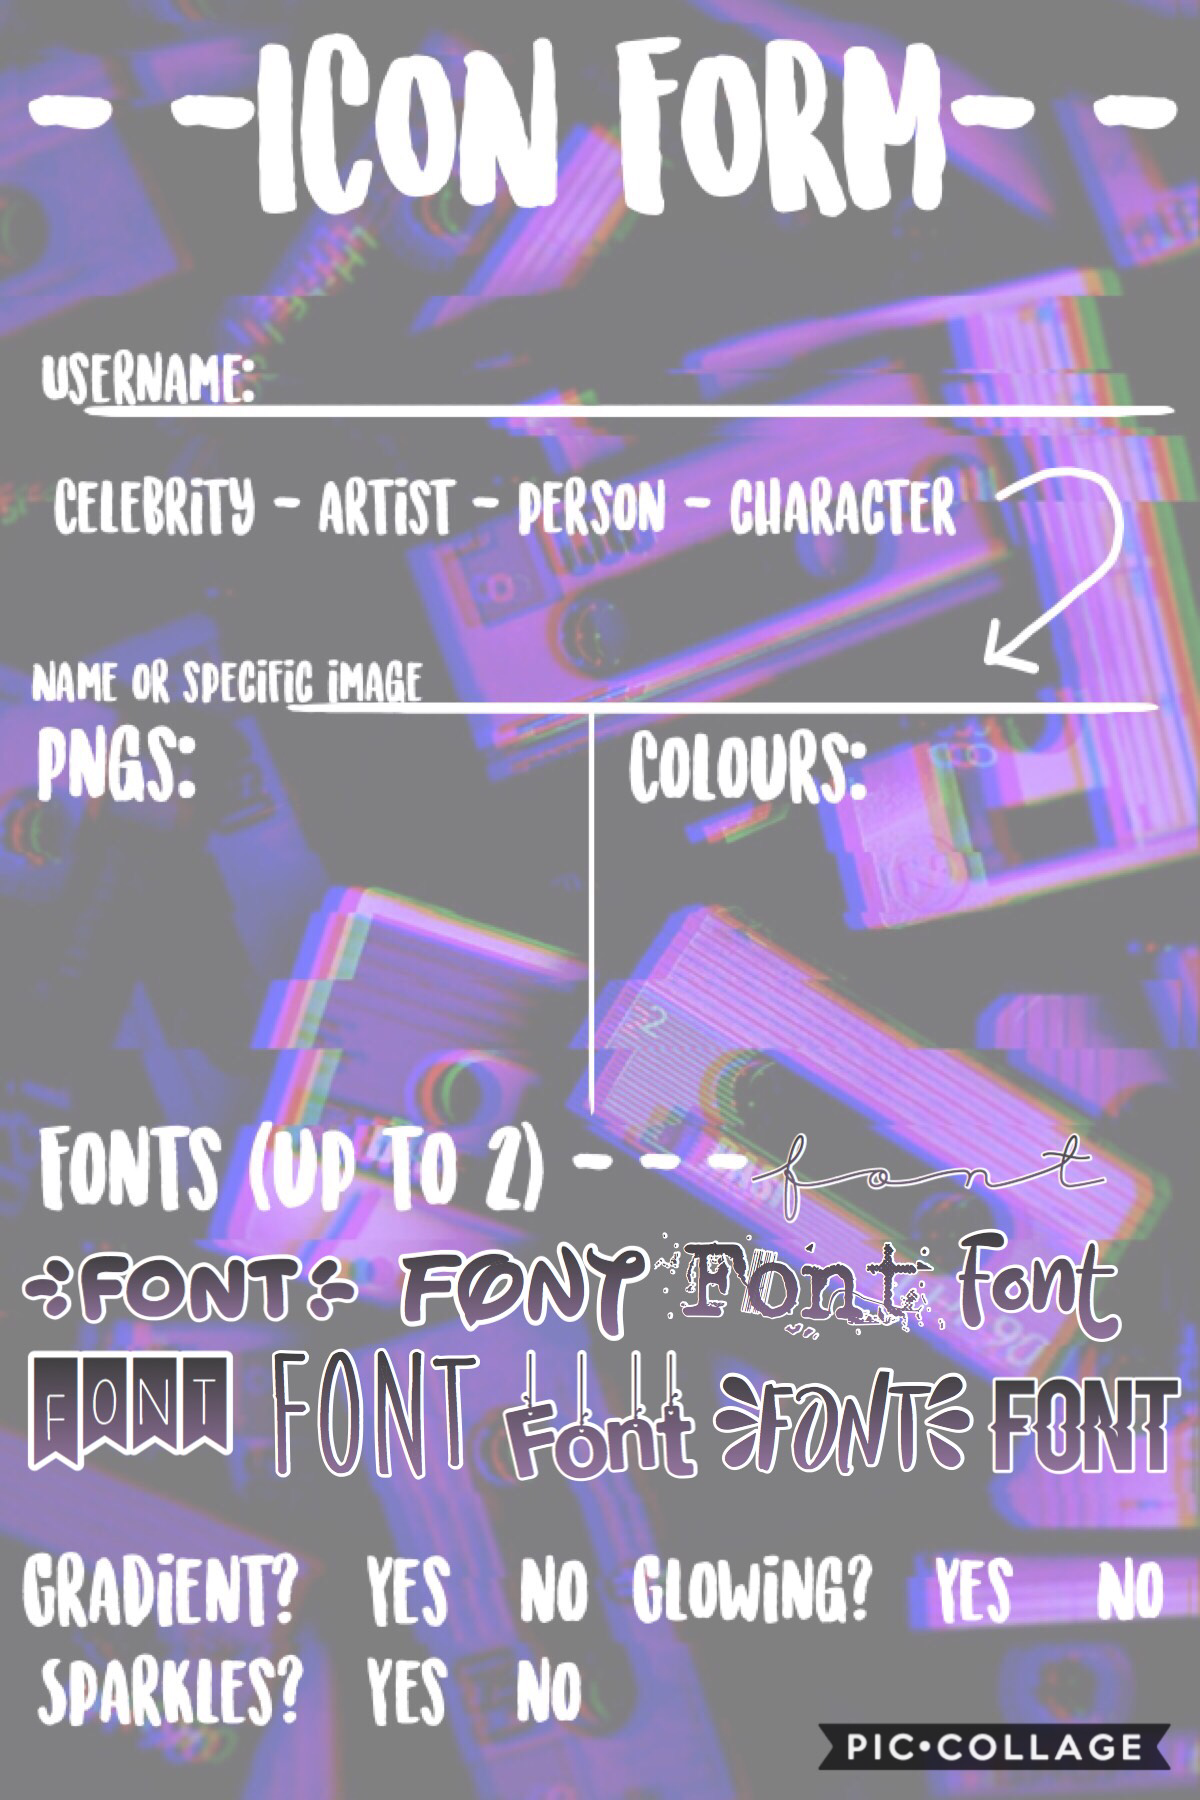 ⚪️🔘TAP🔘⚪️ ICON FORM Just fill it out and I'll make it as soon as possible!